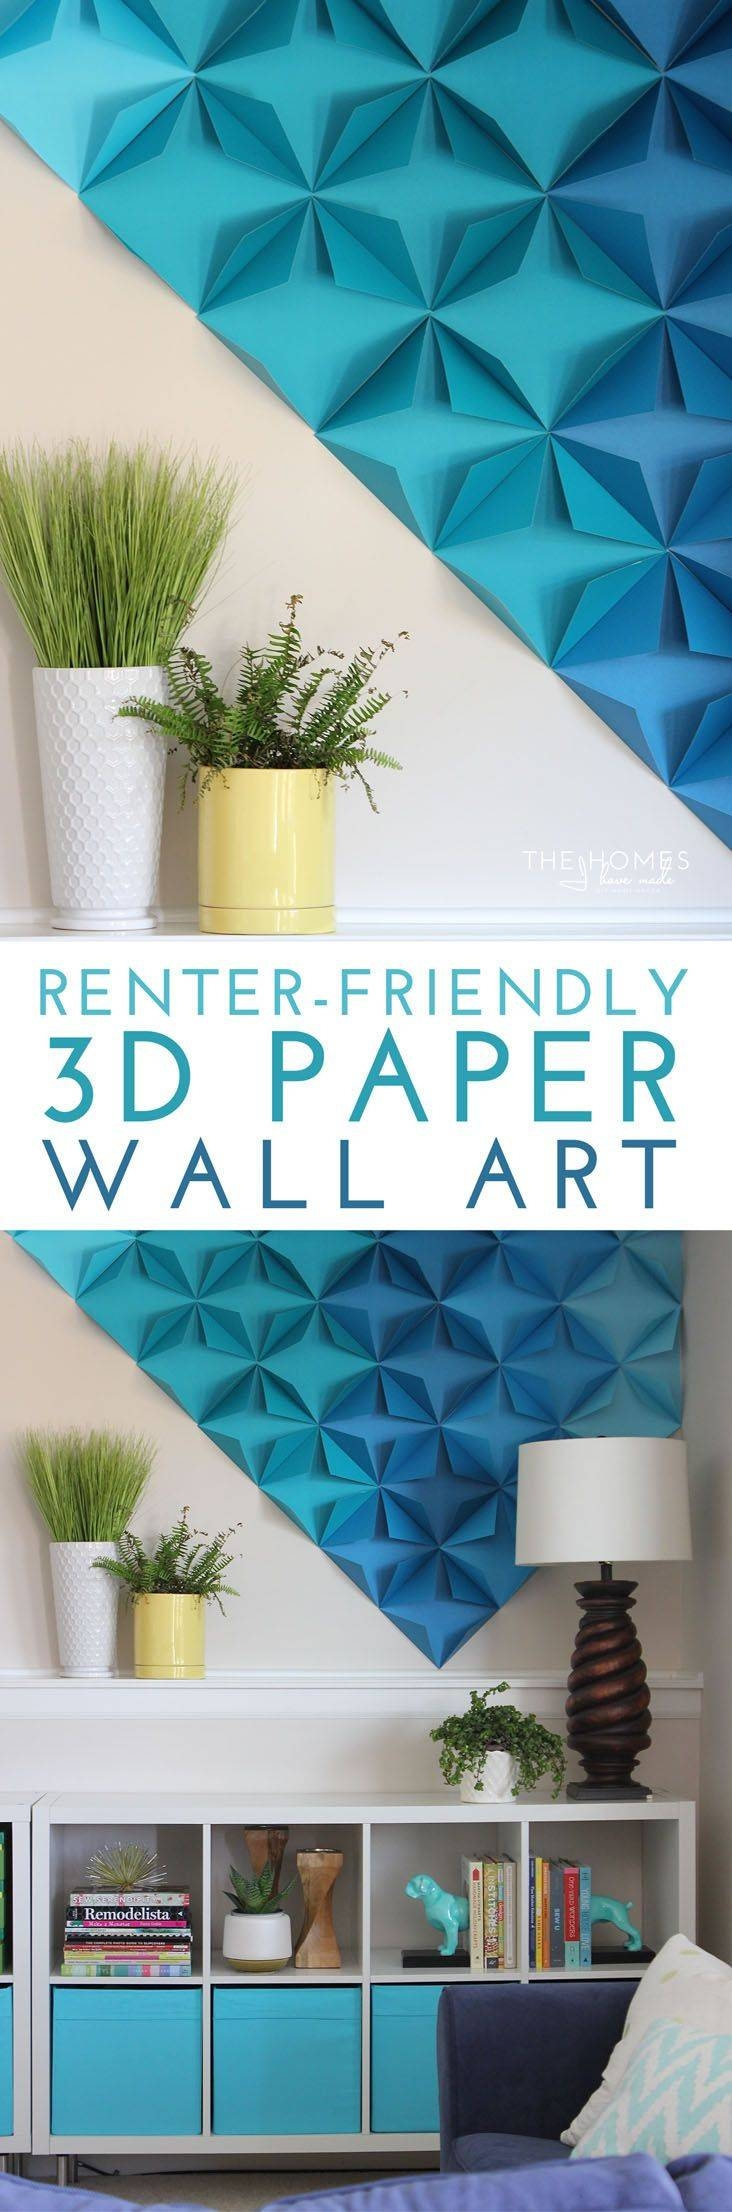 25+ Unique Paper Wall Decor Ideas On Pinterest | Diy Wall Flowers With Current Gold Coast 3d Wall Art (View 5 of 20)